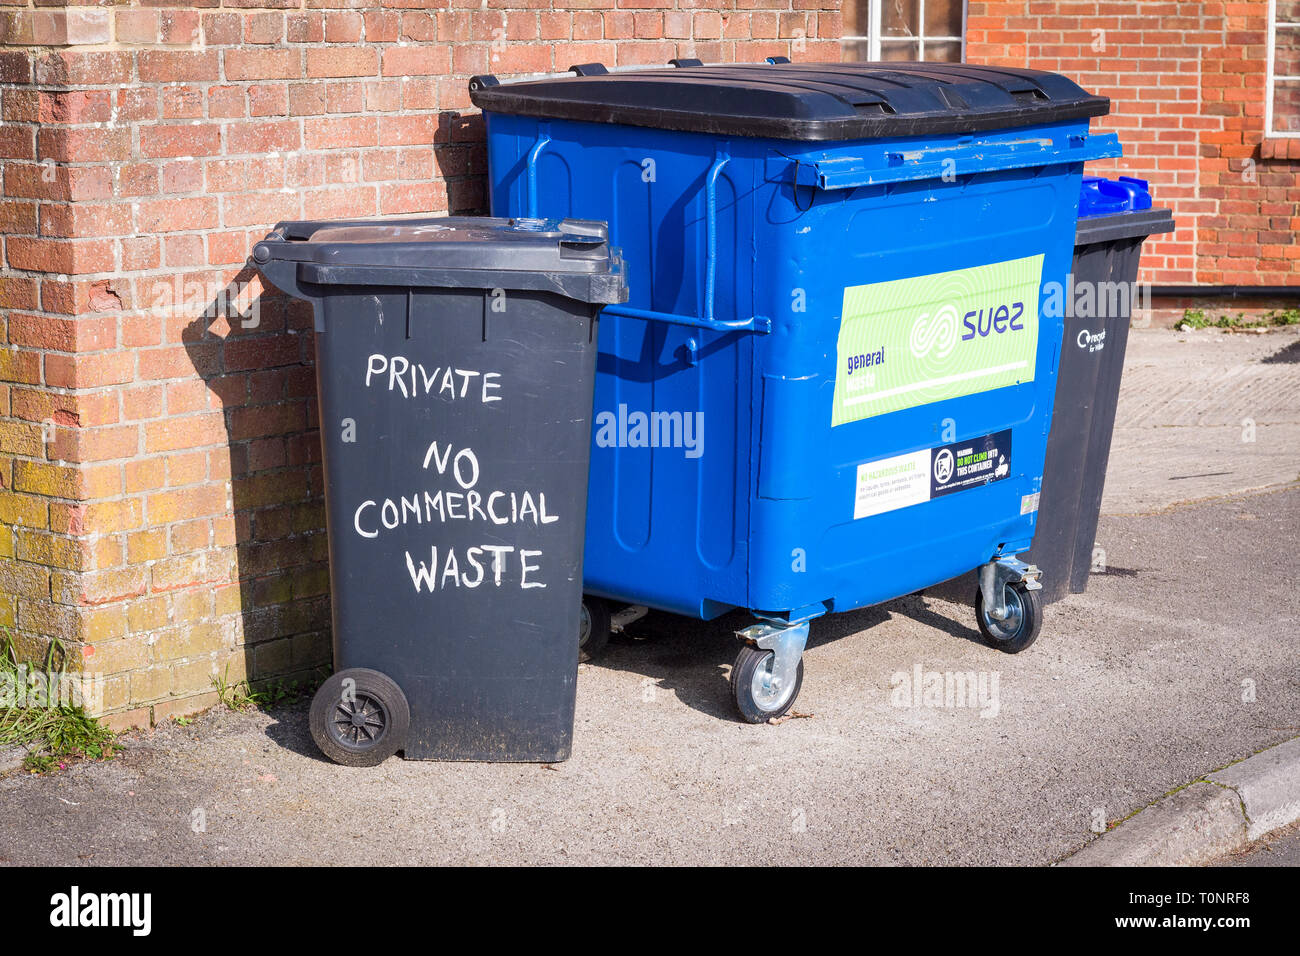 Waste recycling bins for private and business users await emptying in Devizes Wiltshire England UK Stock Photo